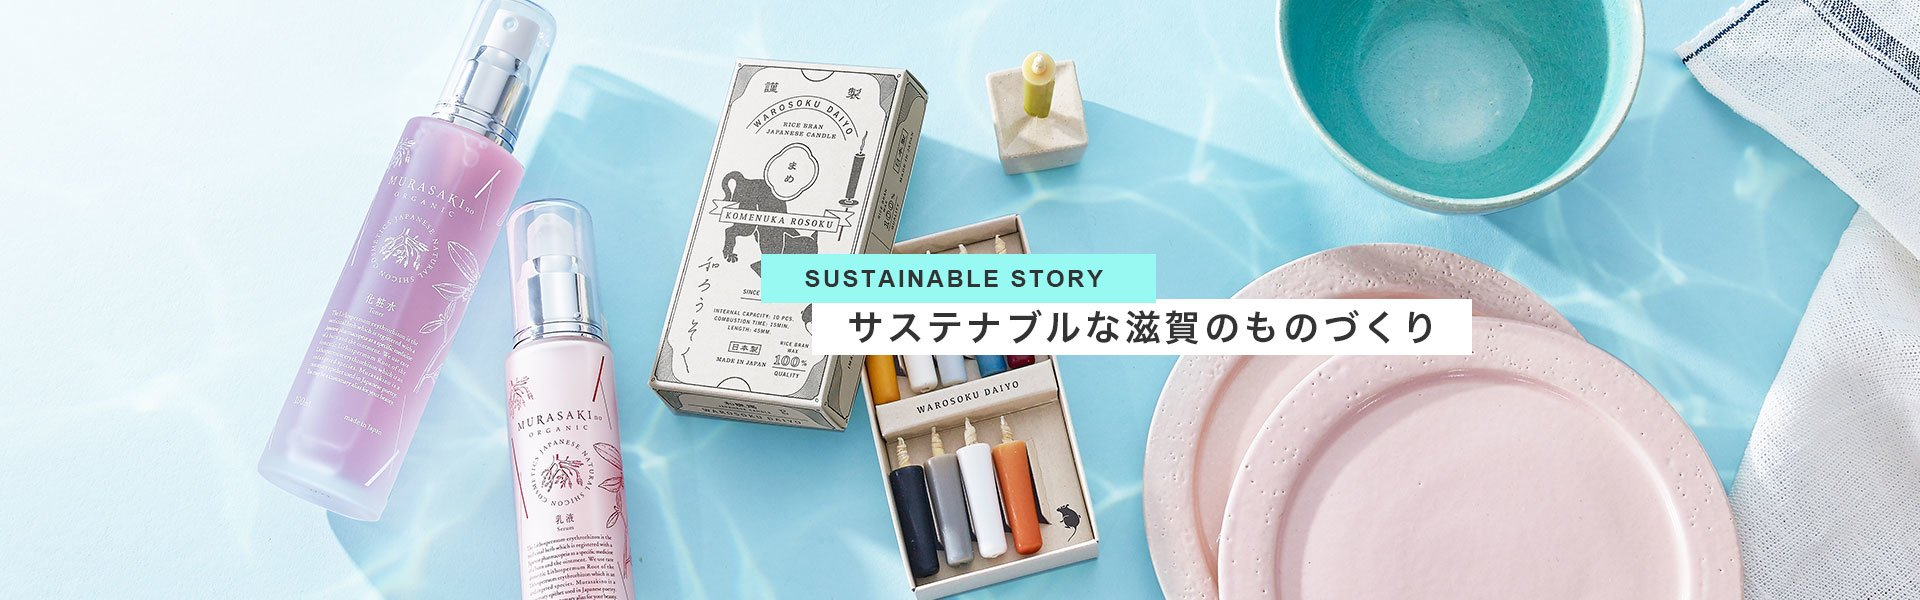 SUSTAINABLE STORY